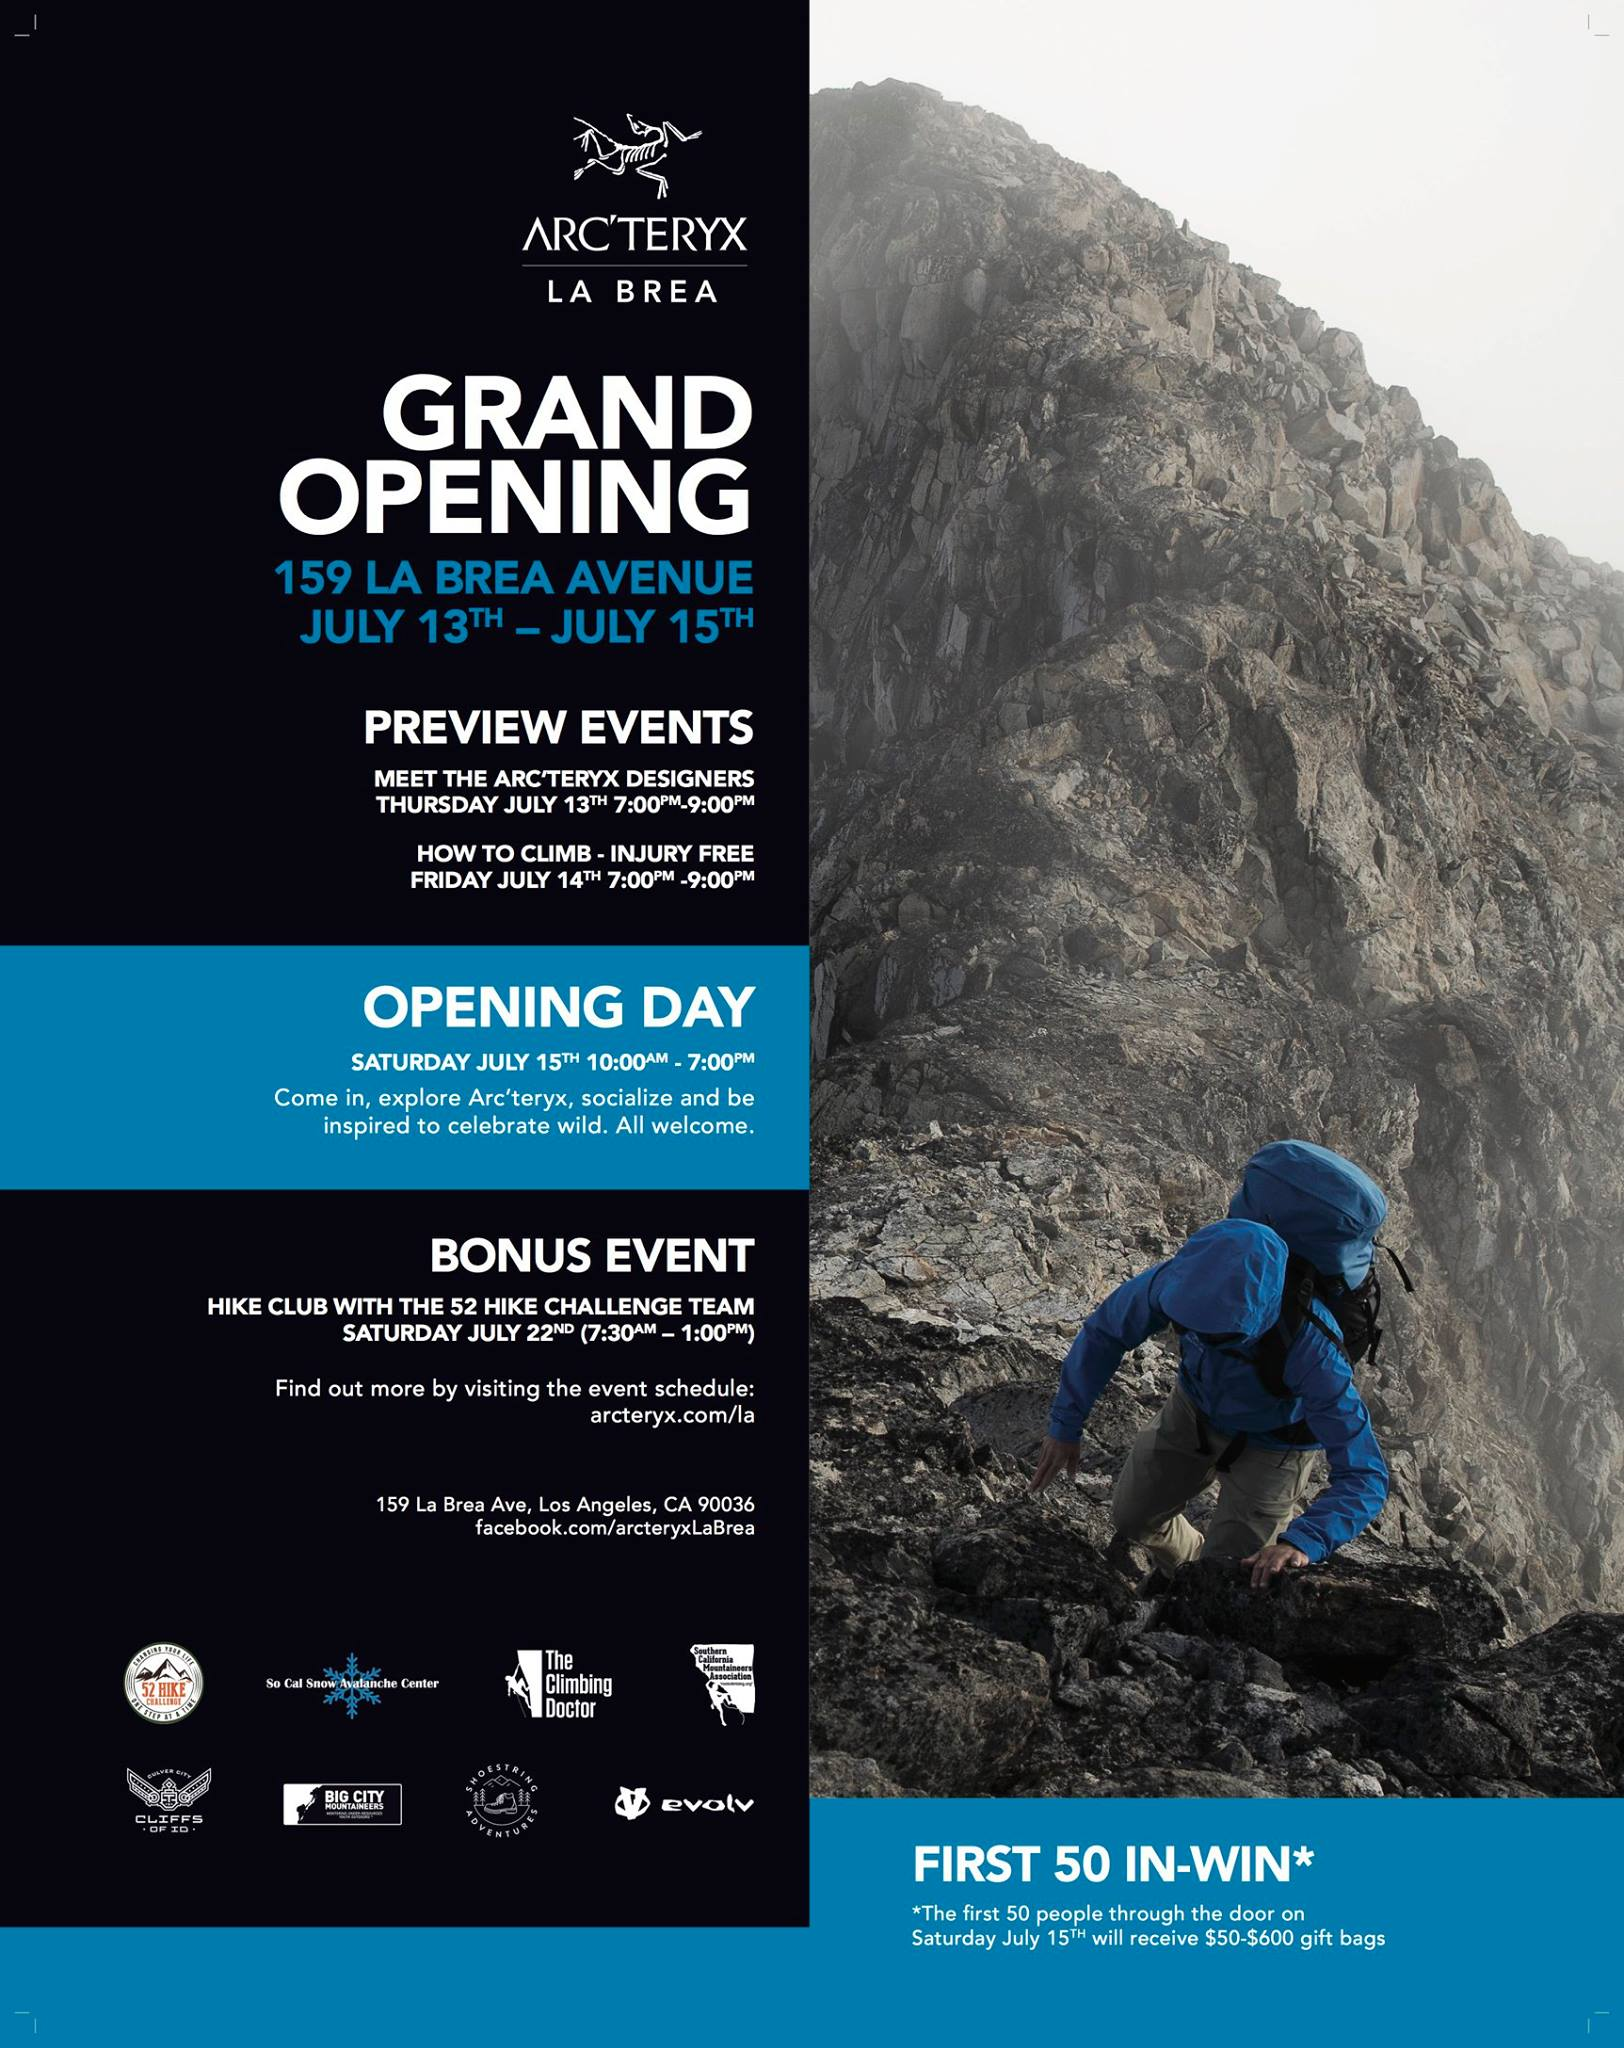 Info session with Latino Outdoors @ Arc'teryx La Brea Grand Opening